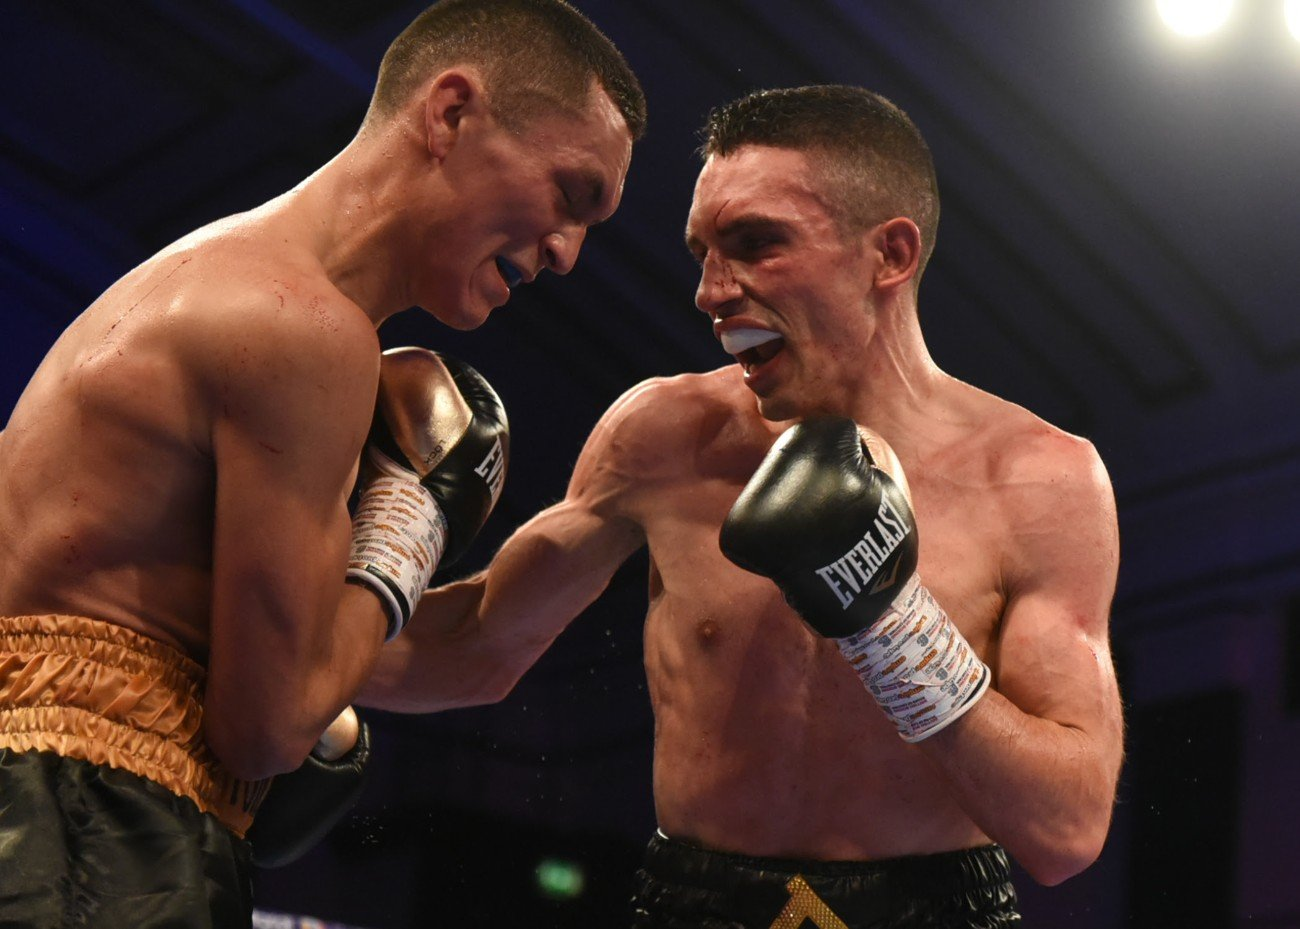 Alex Dilmaghani -  Promoter Mick Hennessy is delighted to announce that Alex Dilmaghani's all-action showdown with Francisco Fonseca on Saturday 16 November had a total reach of just under 2 million viewers on free-to-air Channel 5.